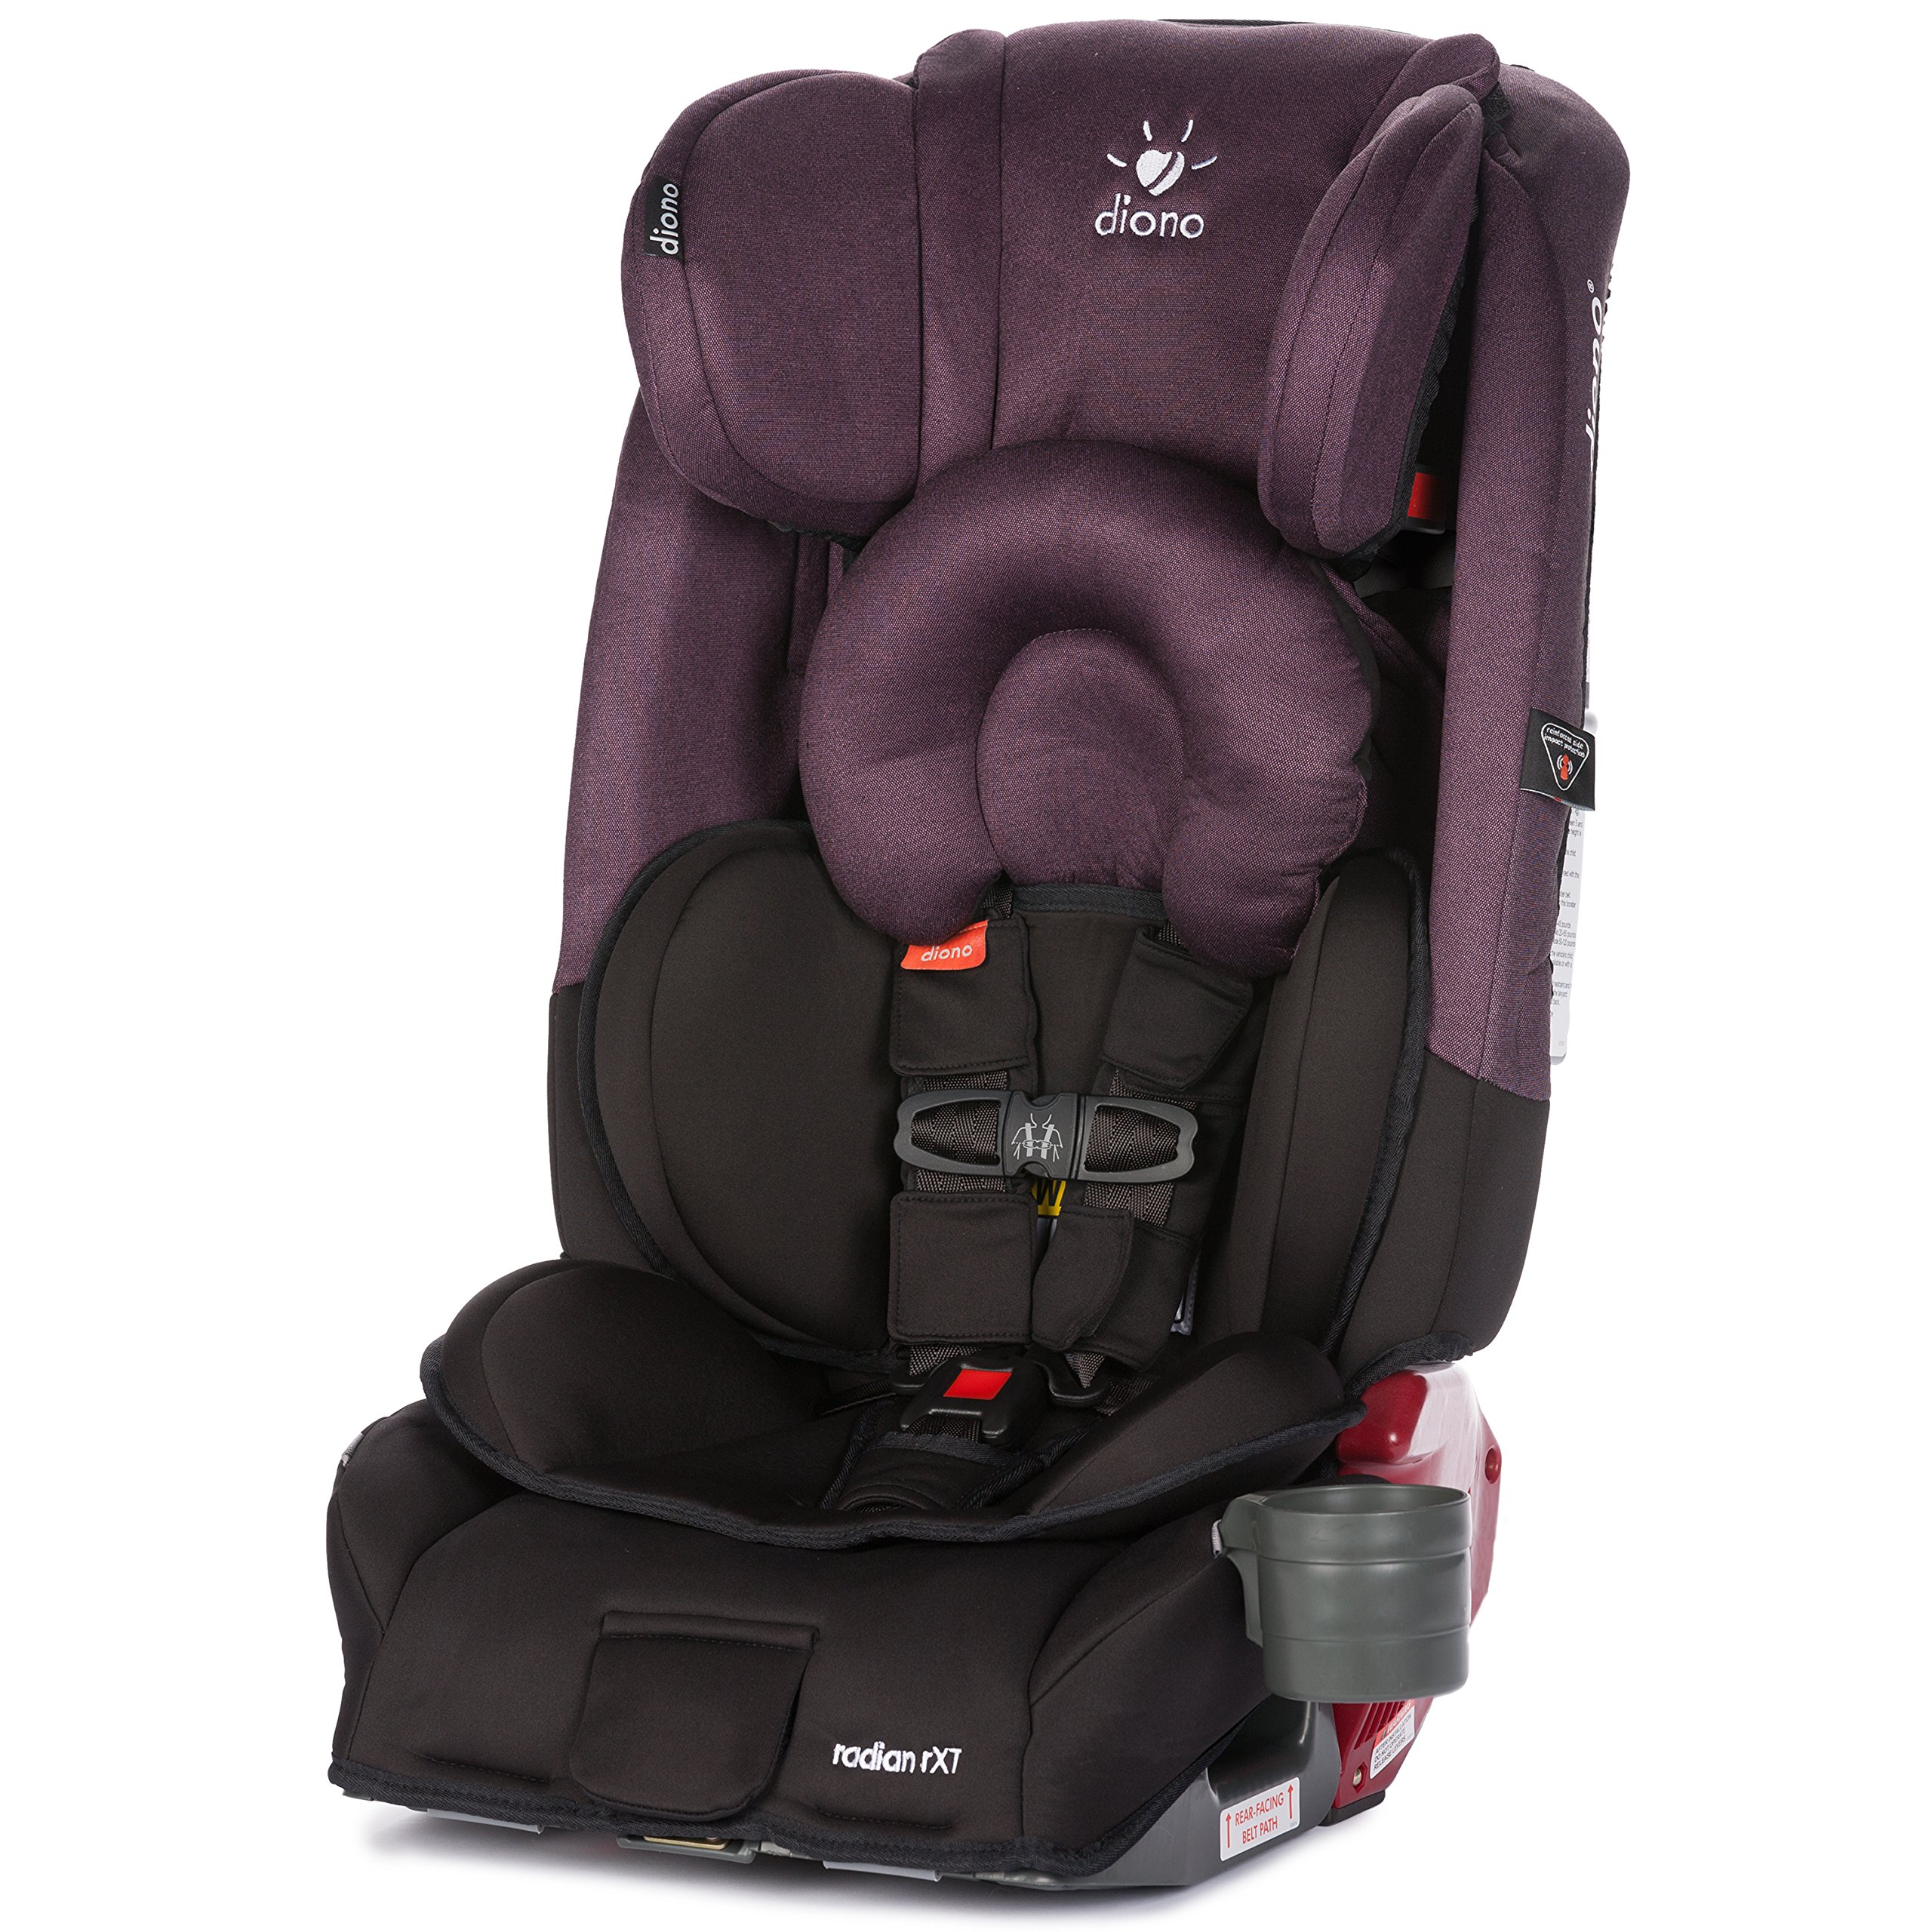 Diono Radian RXT All-In-One Convertible Car Seat, Black Plum